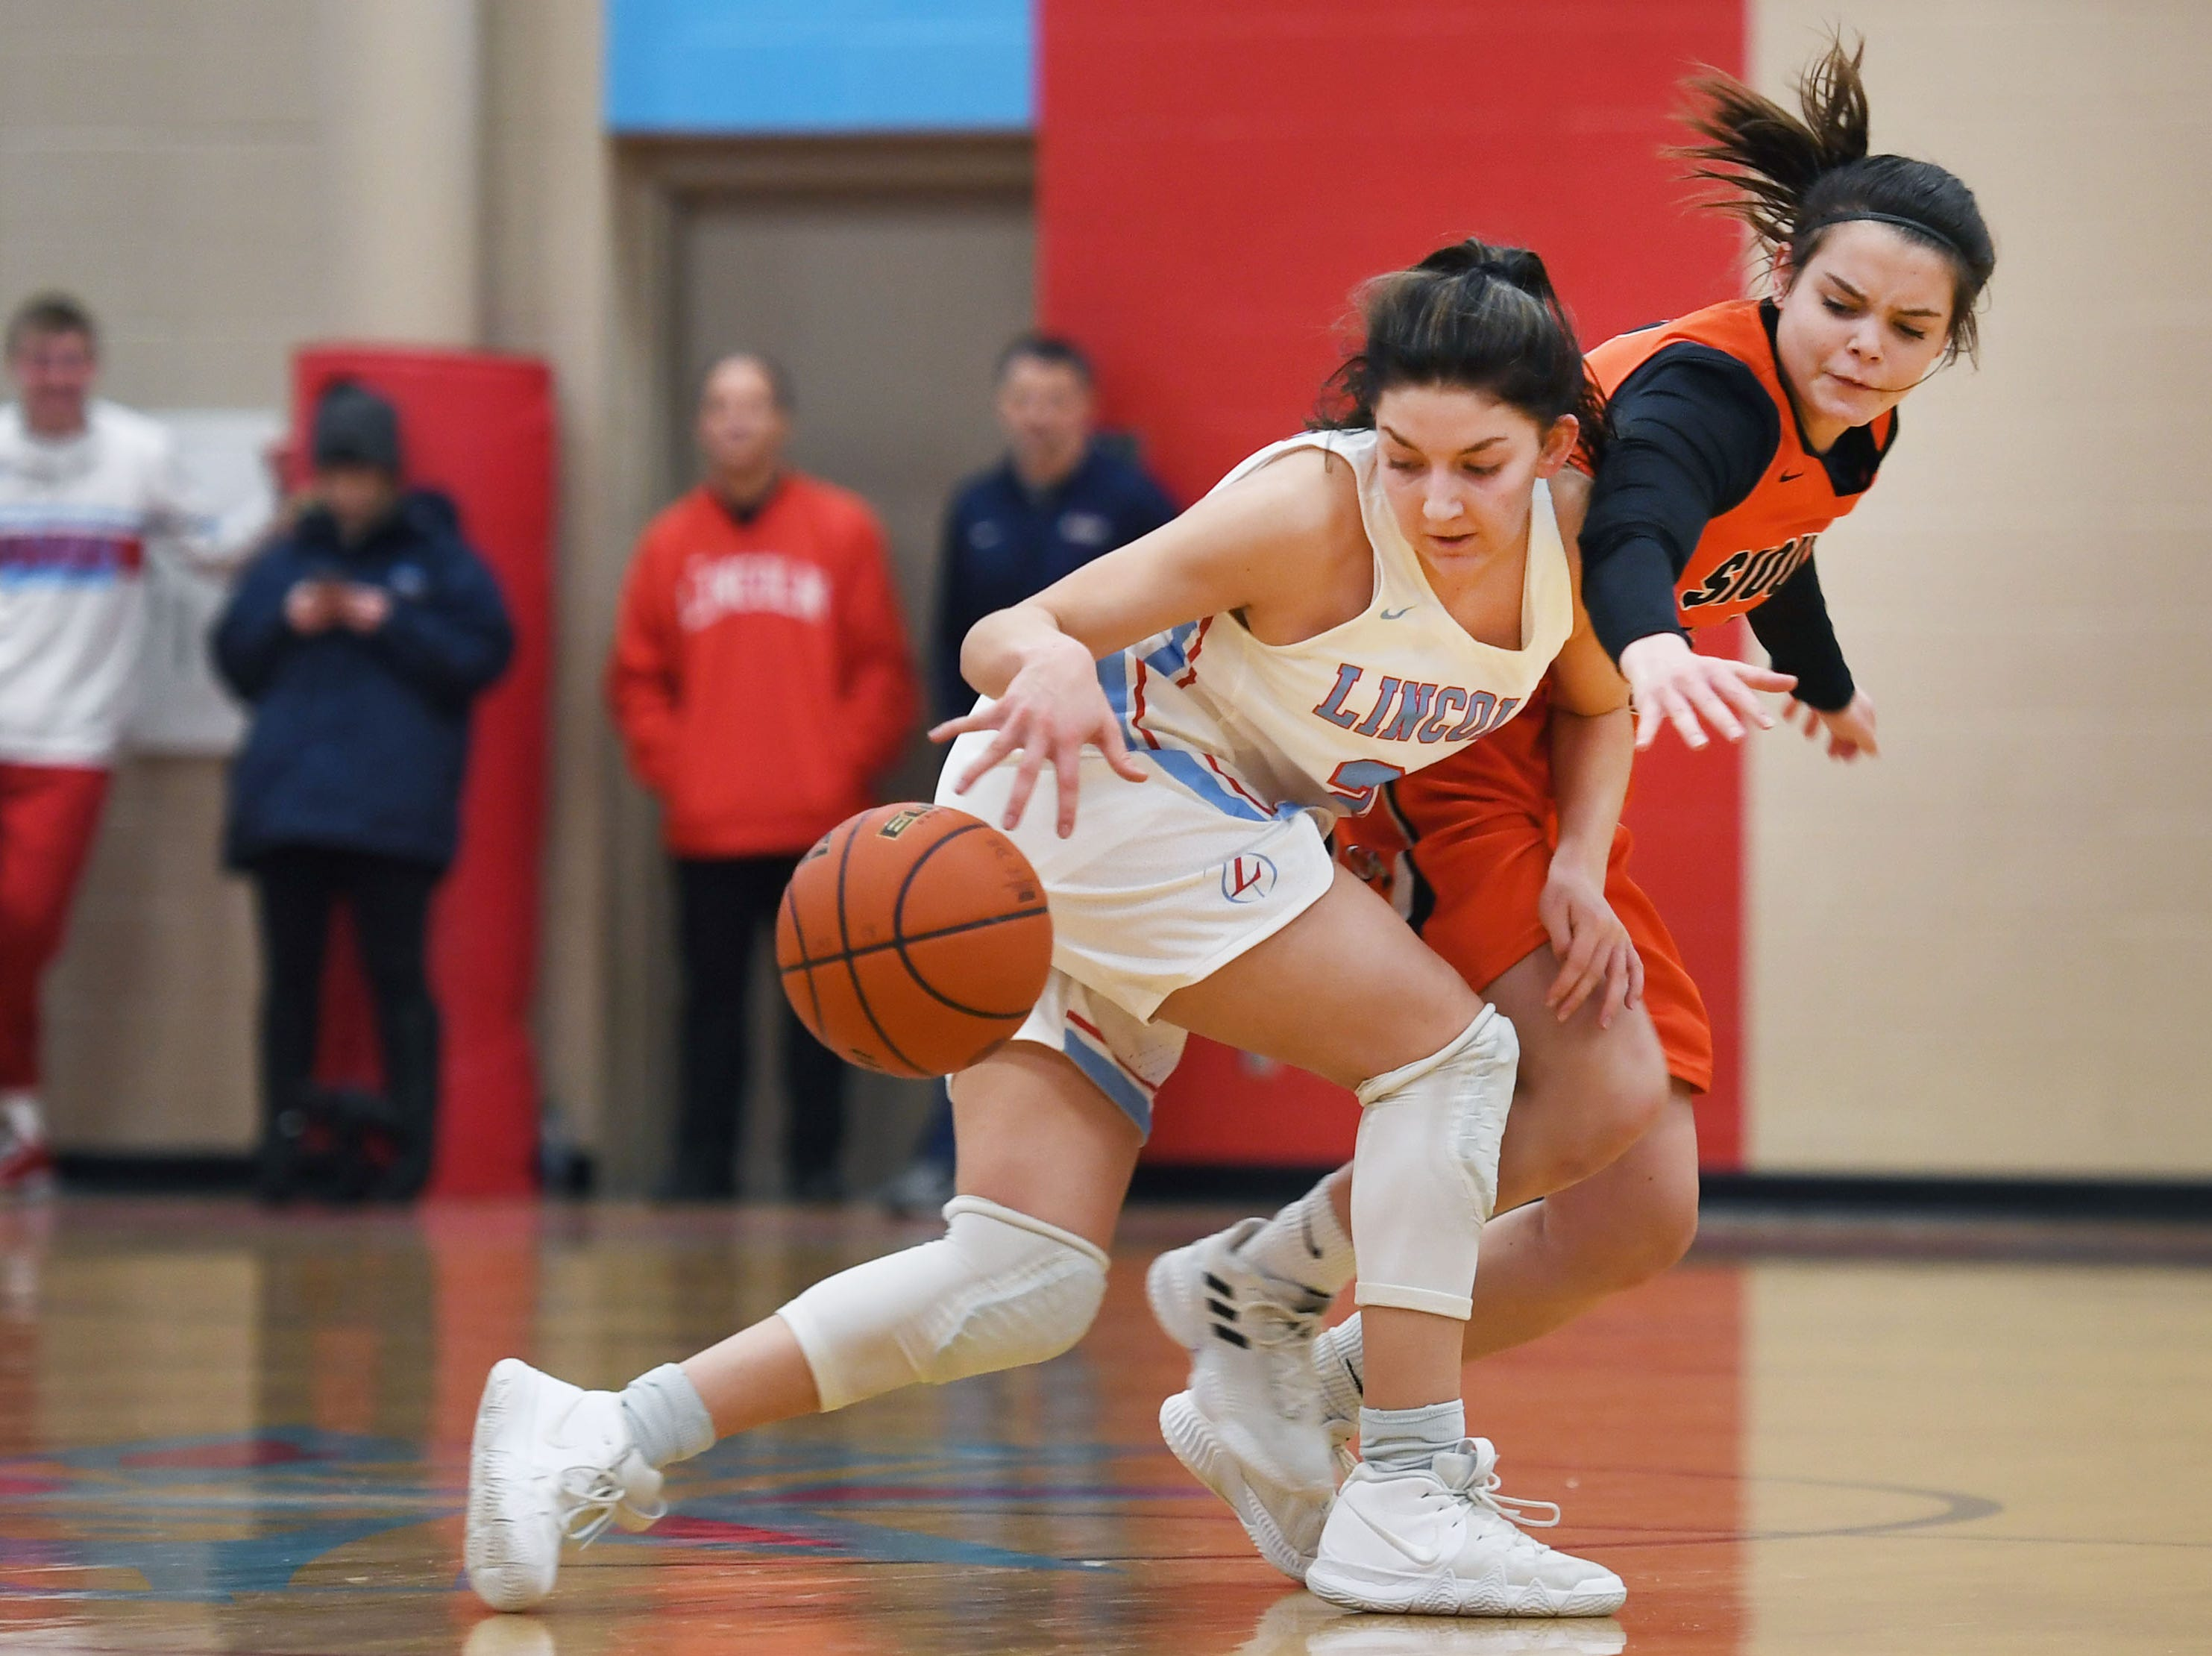 Lincoln's Brooke Brown gains control of the ball against Washington's Brynn Heinert during the game Thursday, Jan. 24, at Lincoln. Lincoln won 63-62 against Washington.